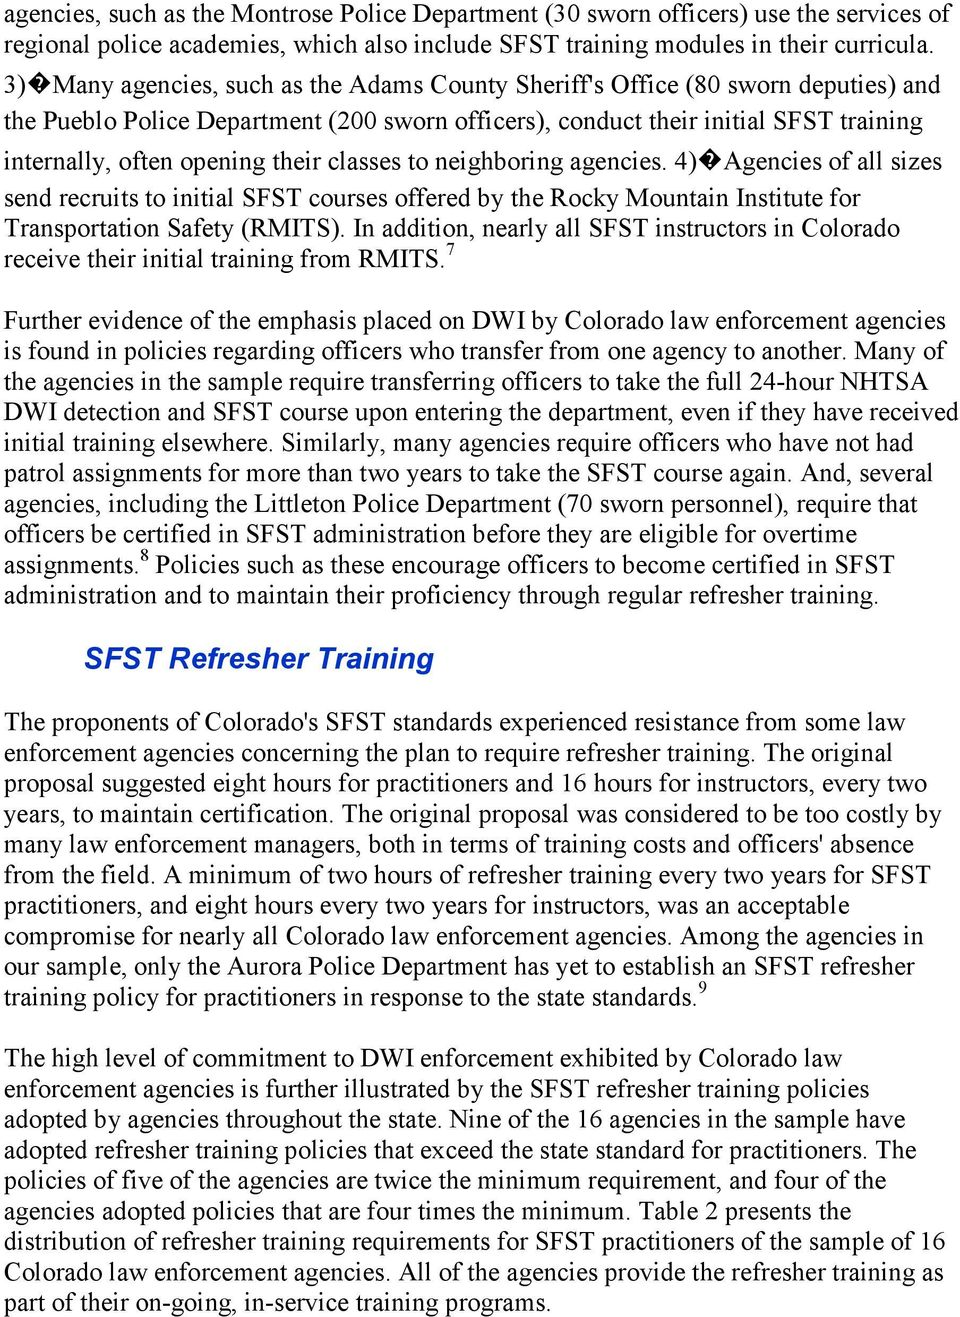 their classes to neighboring agencies. 4) Agencies of all sizes send recruits to initial SFST courses offered by the Rocky Mountain Institute for Transportation Safety (RMITS).